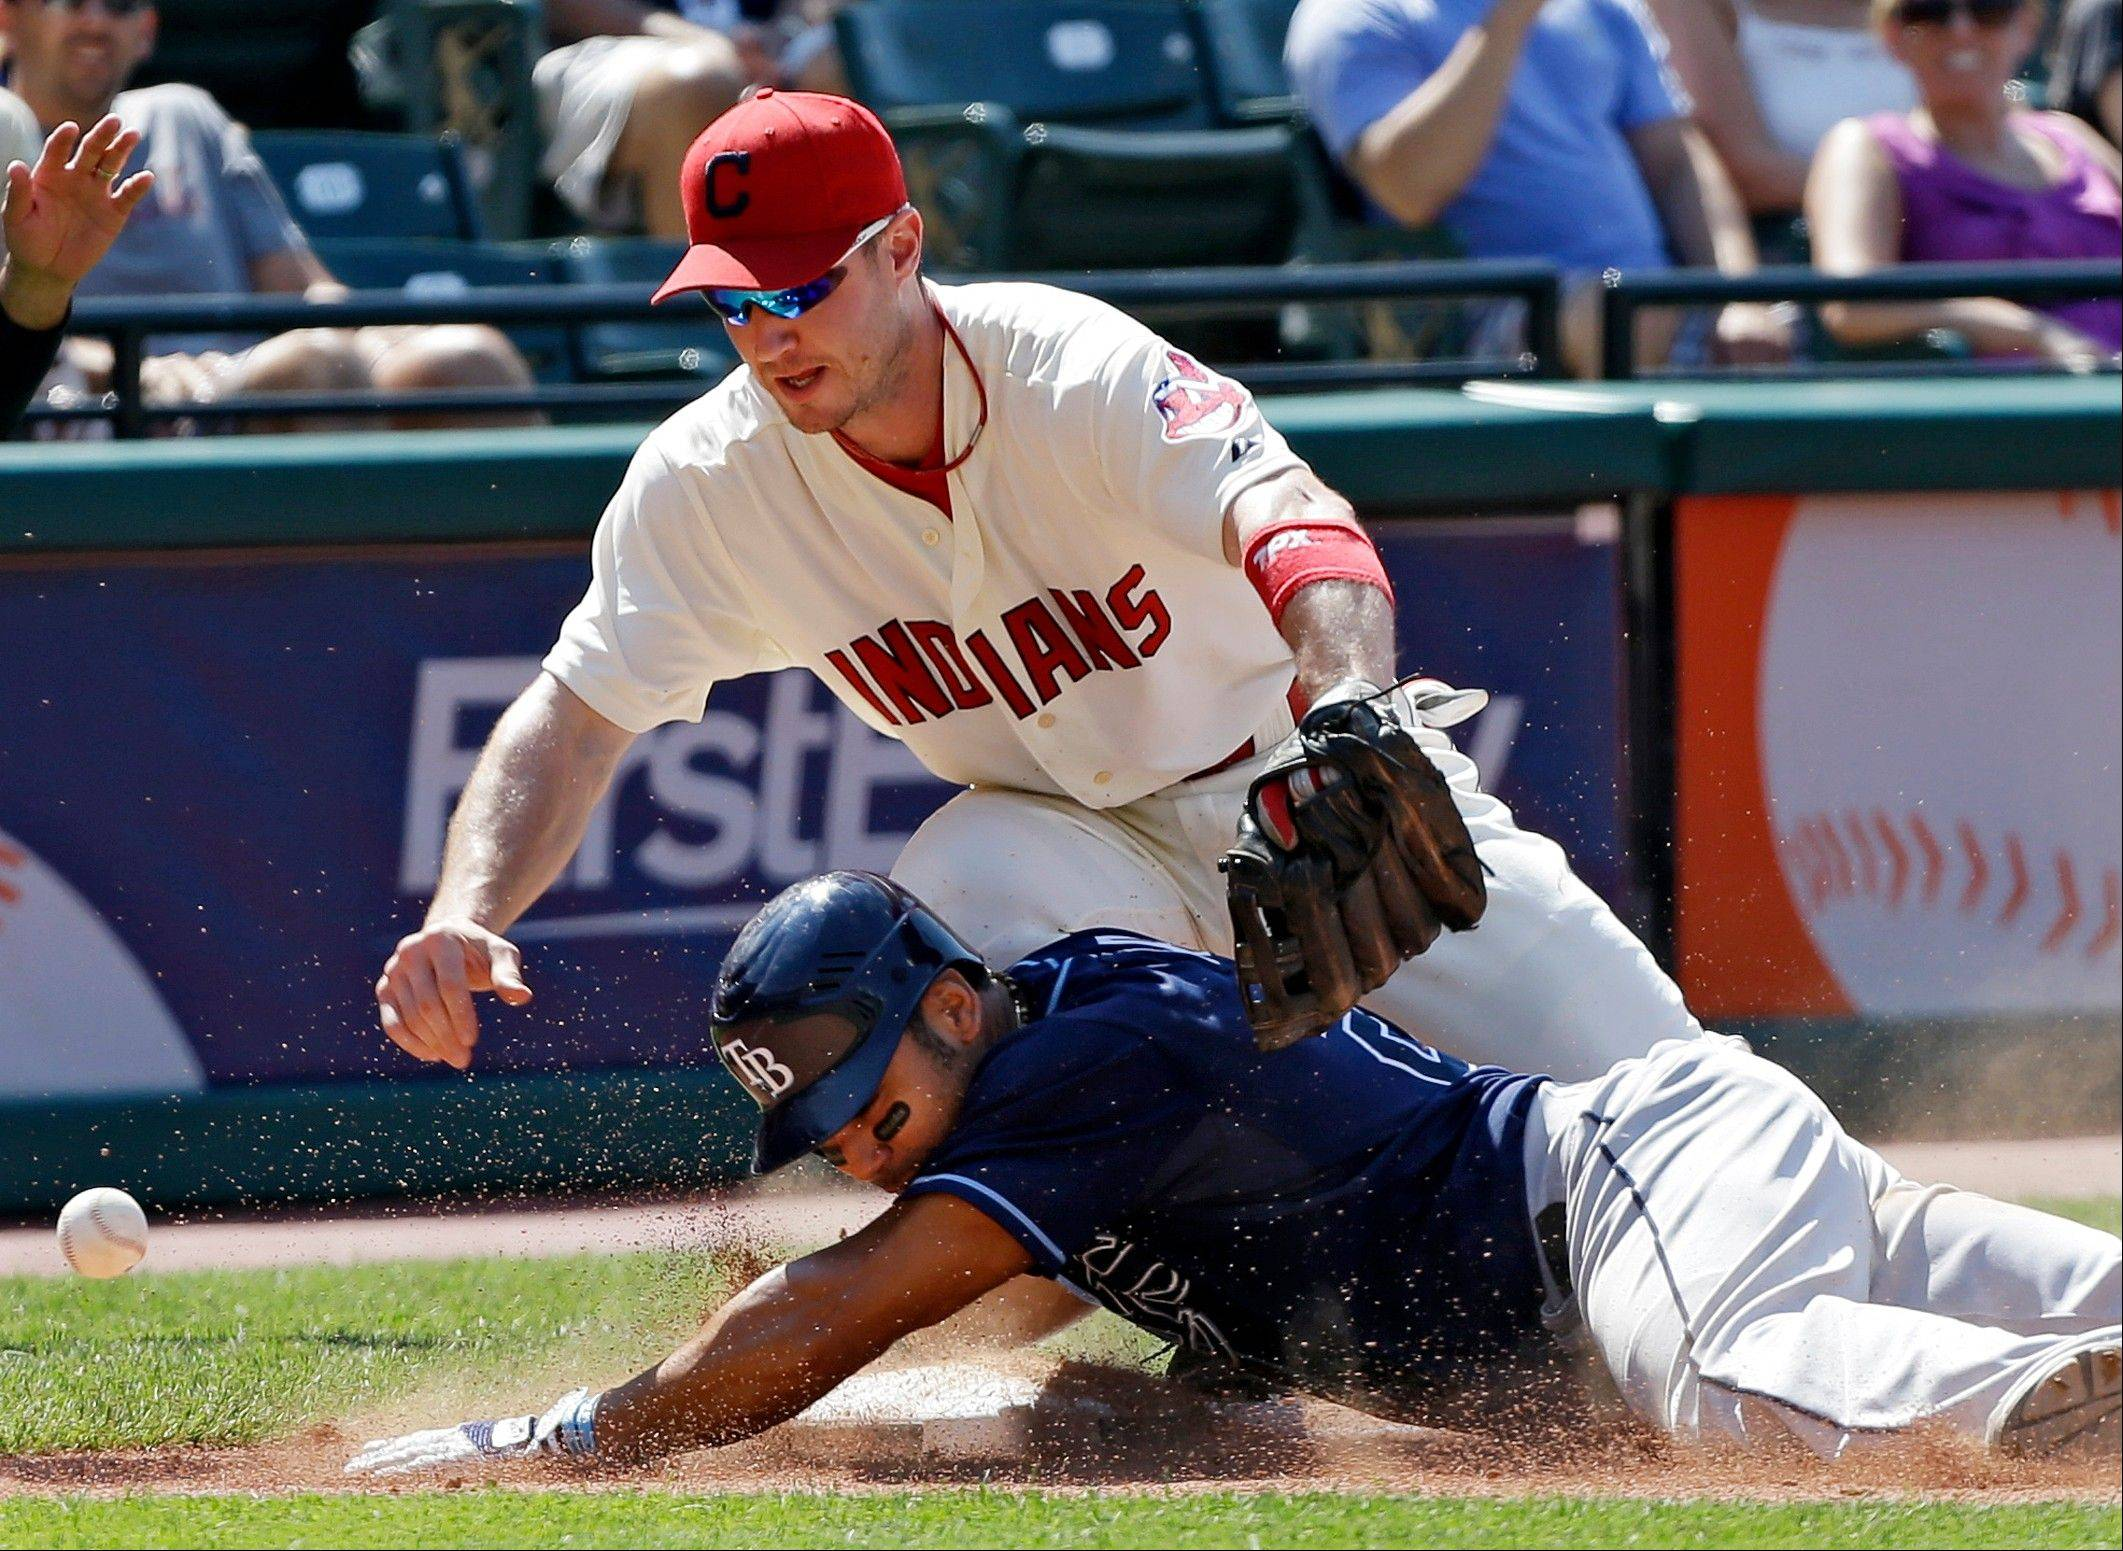 Tampa Bay's Carlos Pena slides into third with an RBI triple as the throw eludes Indians third baseman Jack Hannahan in the ninth inning Sunday in Cleveland.